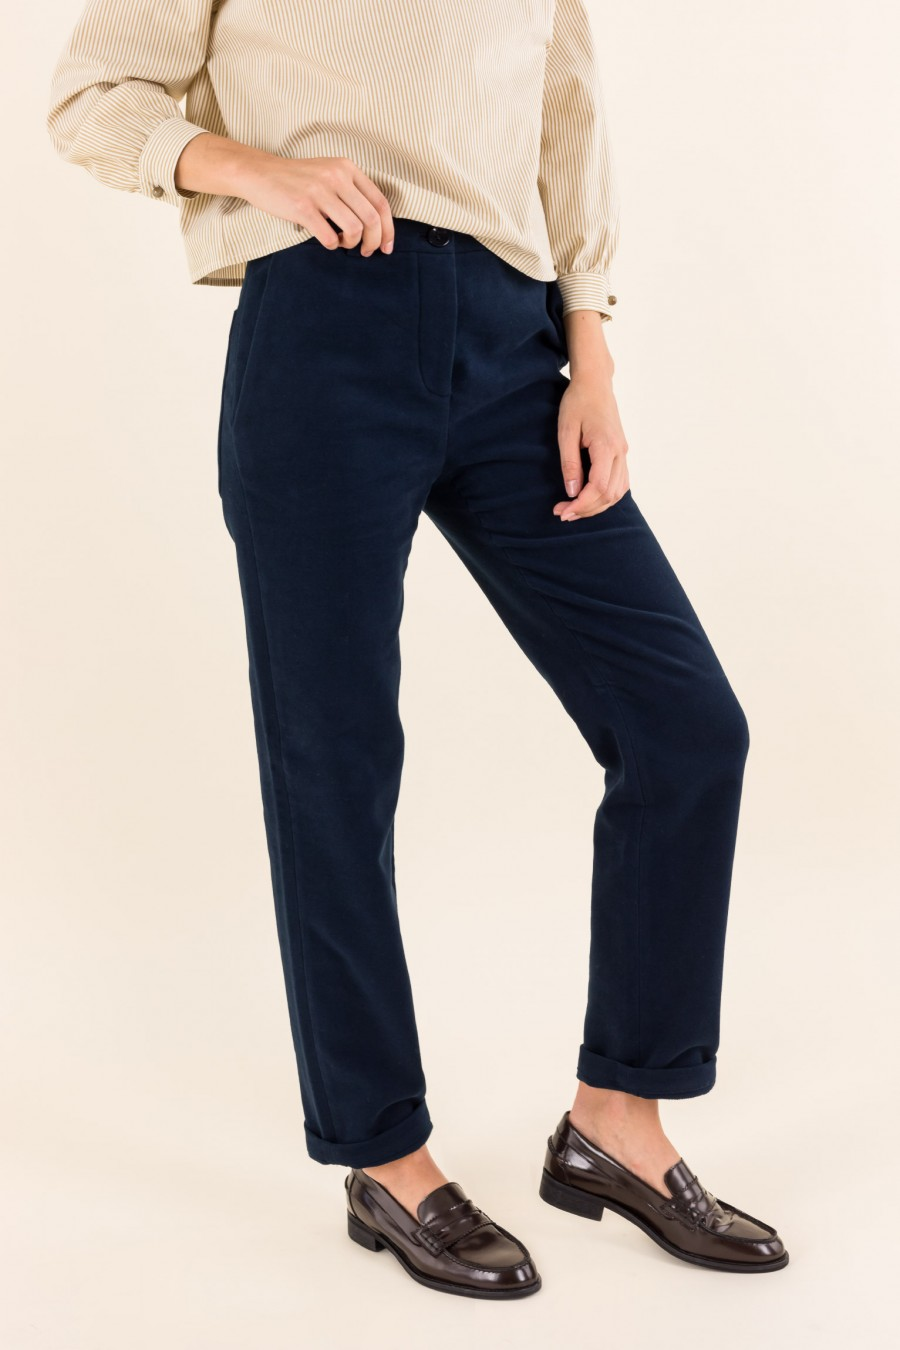 Trousers made of fustian fabric